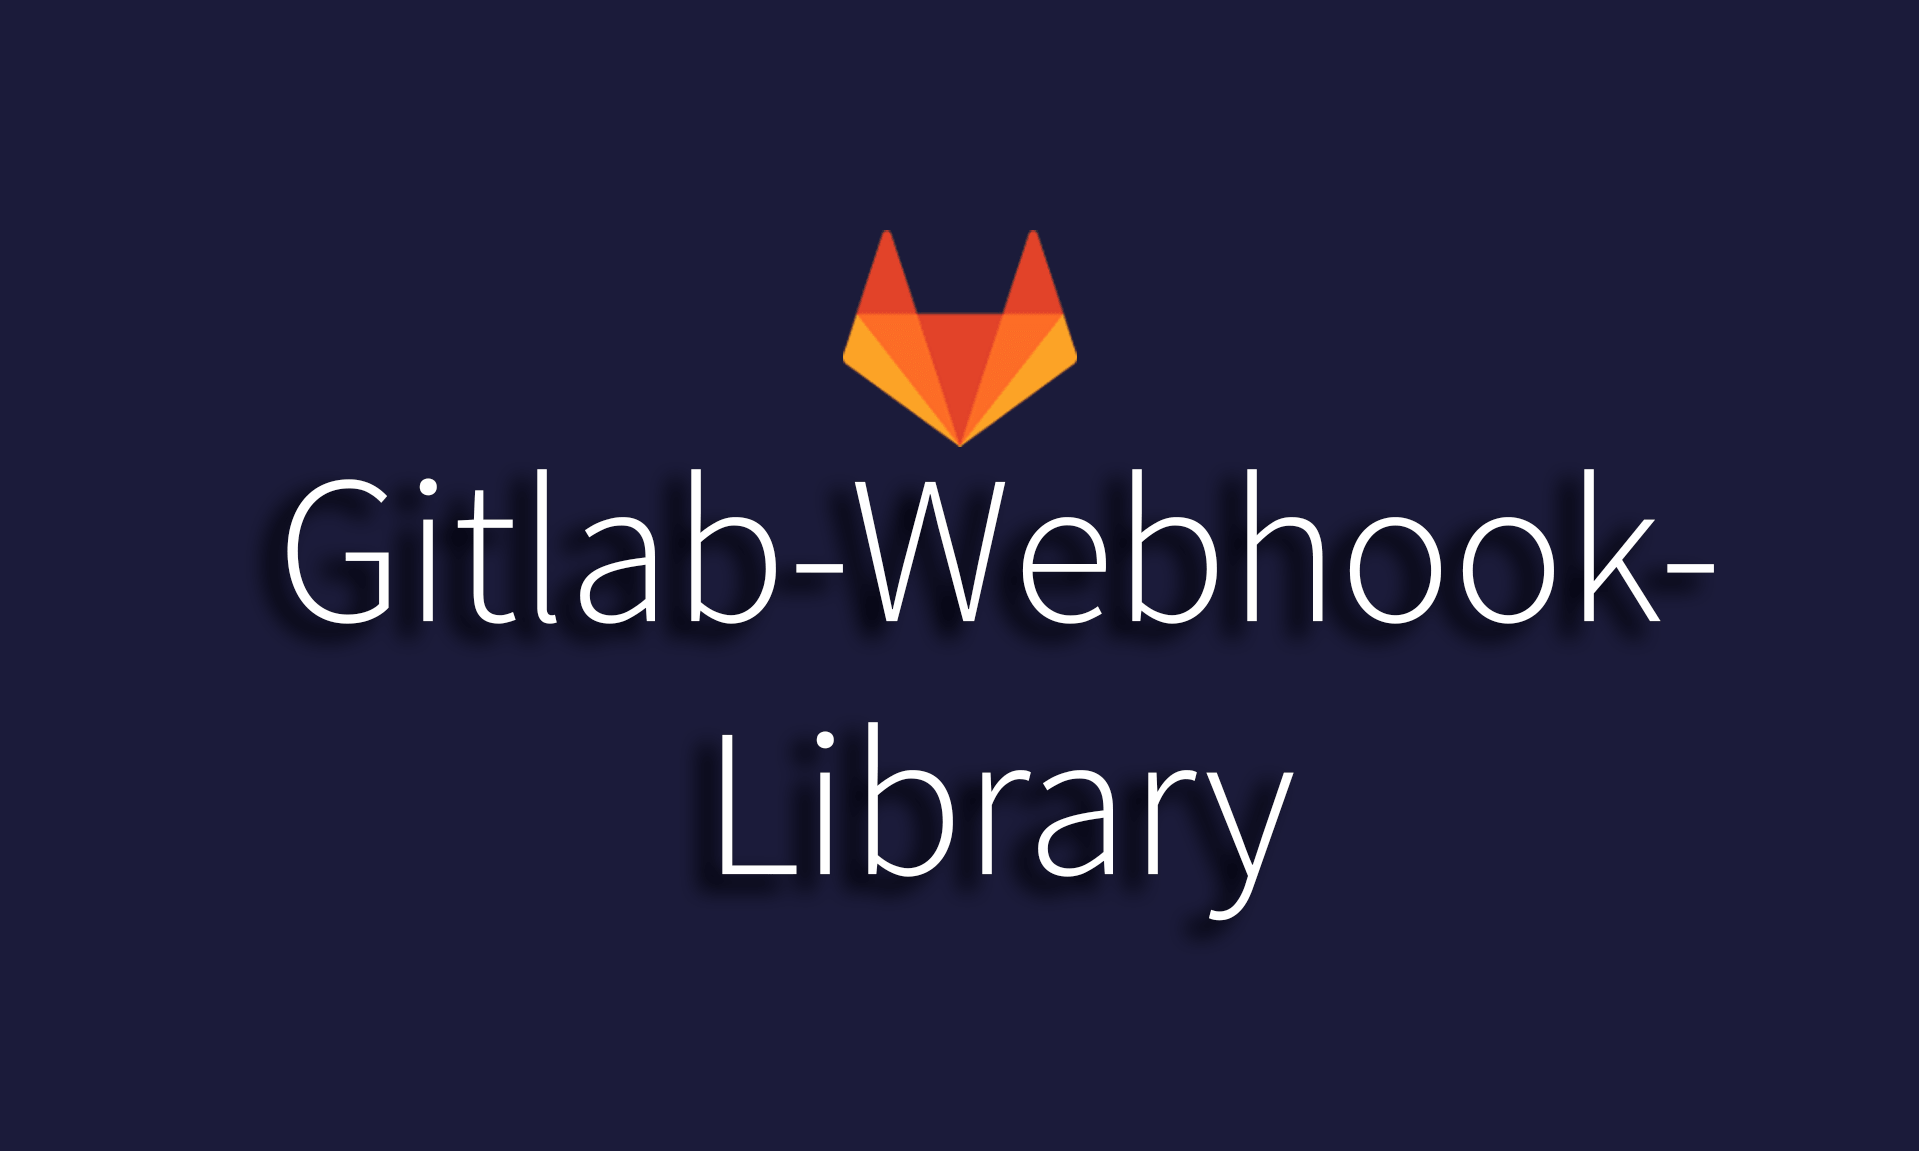 GitLab Webhook Library